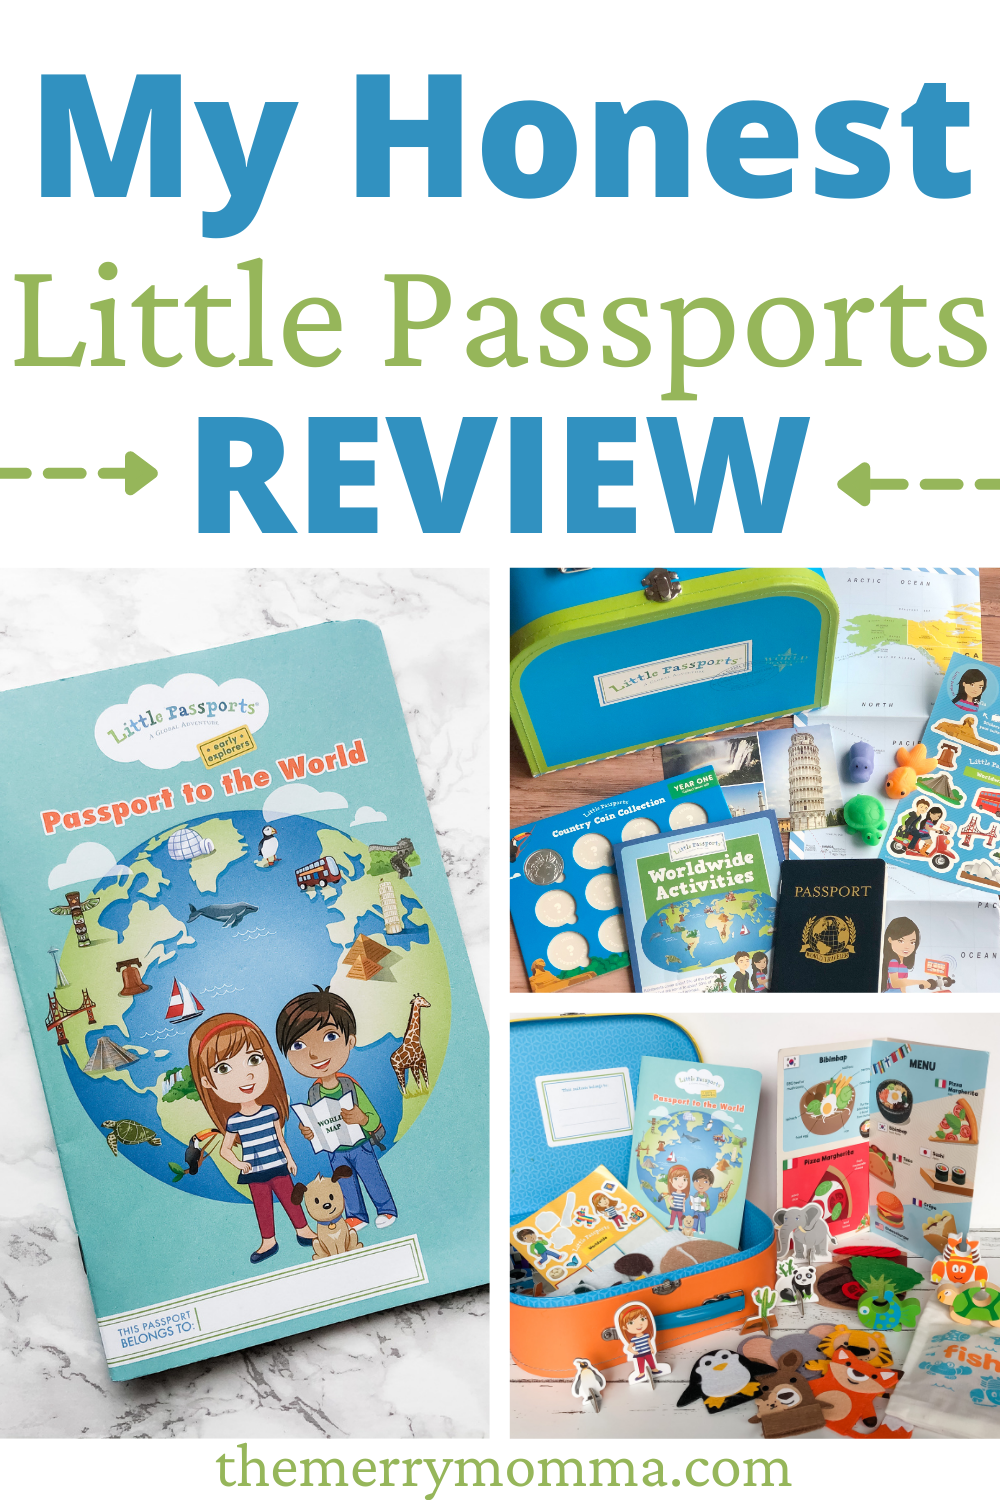 My Honest Little Passports Review | The Merry Momma